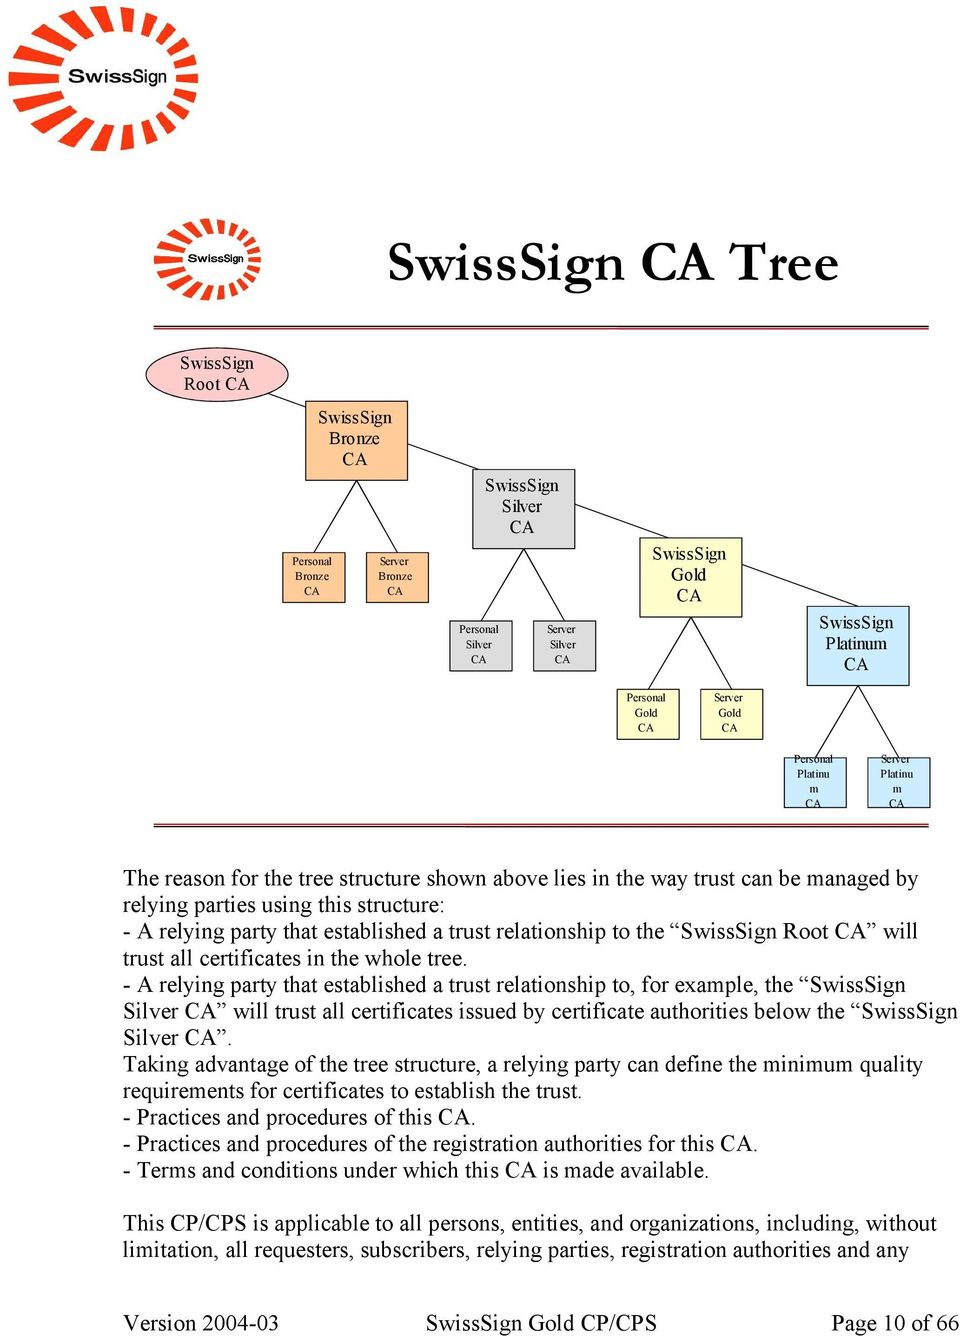 relying party that established a trust relationship to the SwissSign Root CA will trust all certificates in the whole tree.